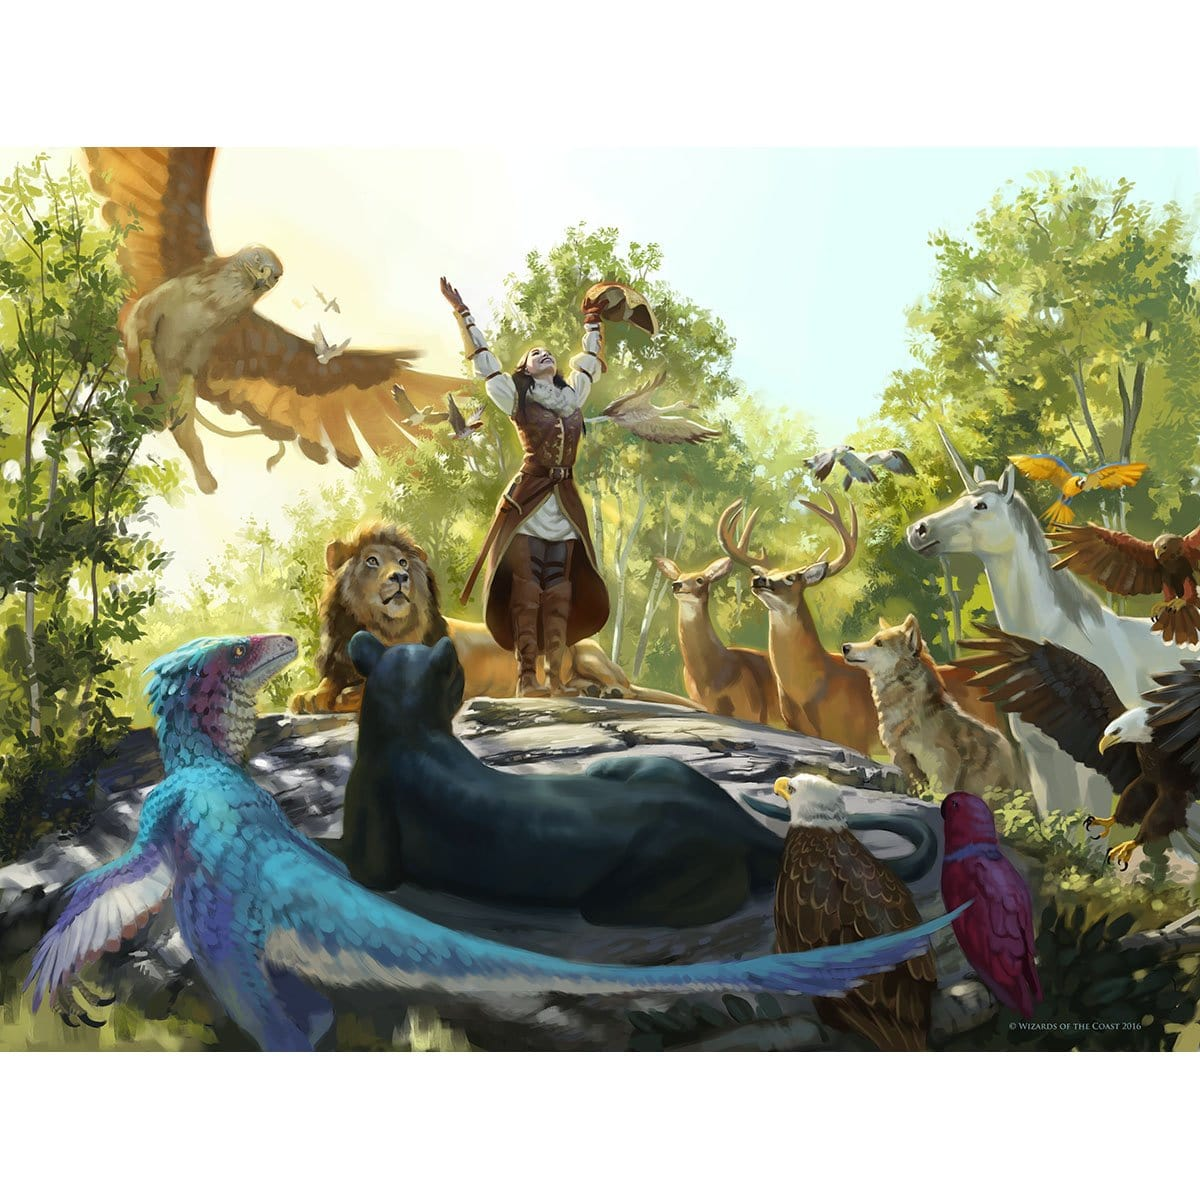 Hymn of the Wilds Print - Print - Original Magic Art - Accessories for Magic the Gathering and other card games